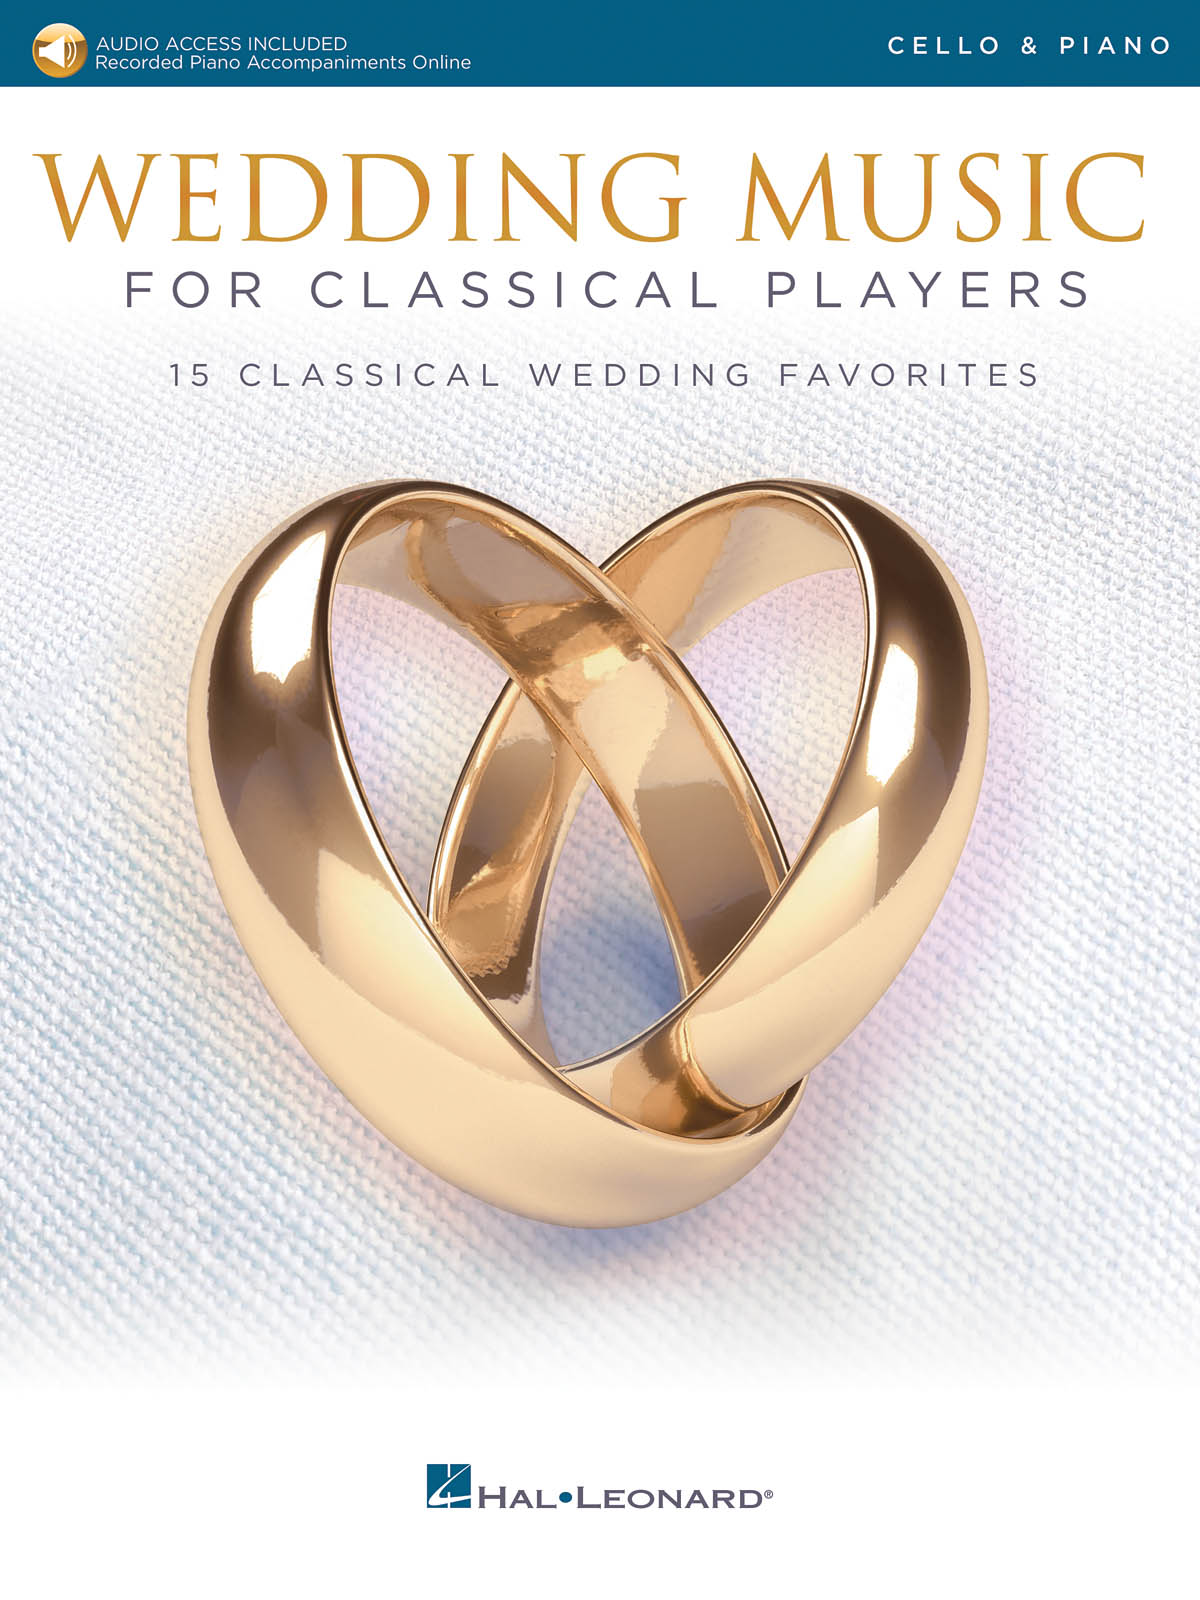 Wedding Music for Classical Players - Cello: Cello and Accomp.